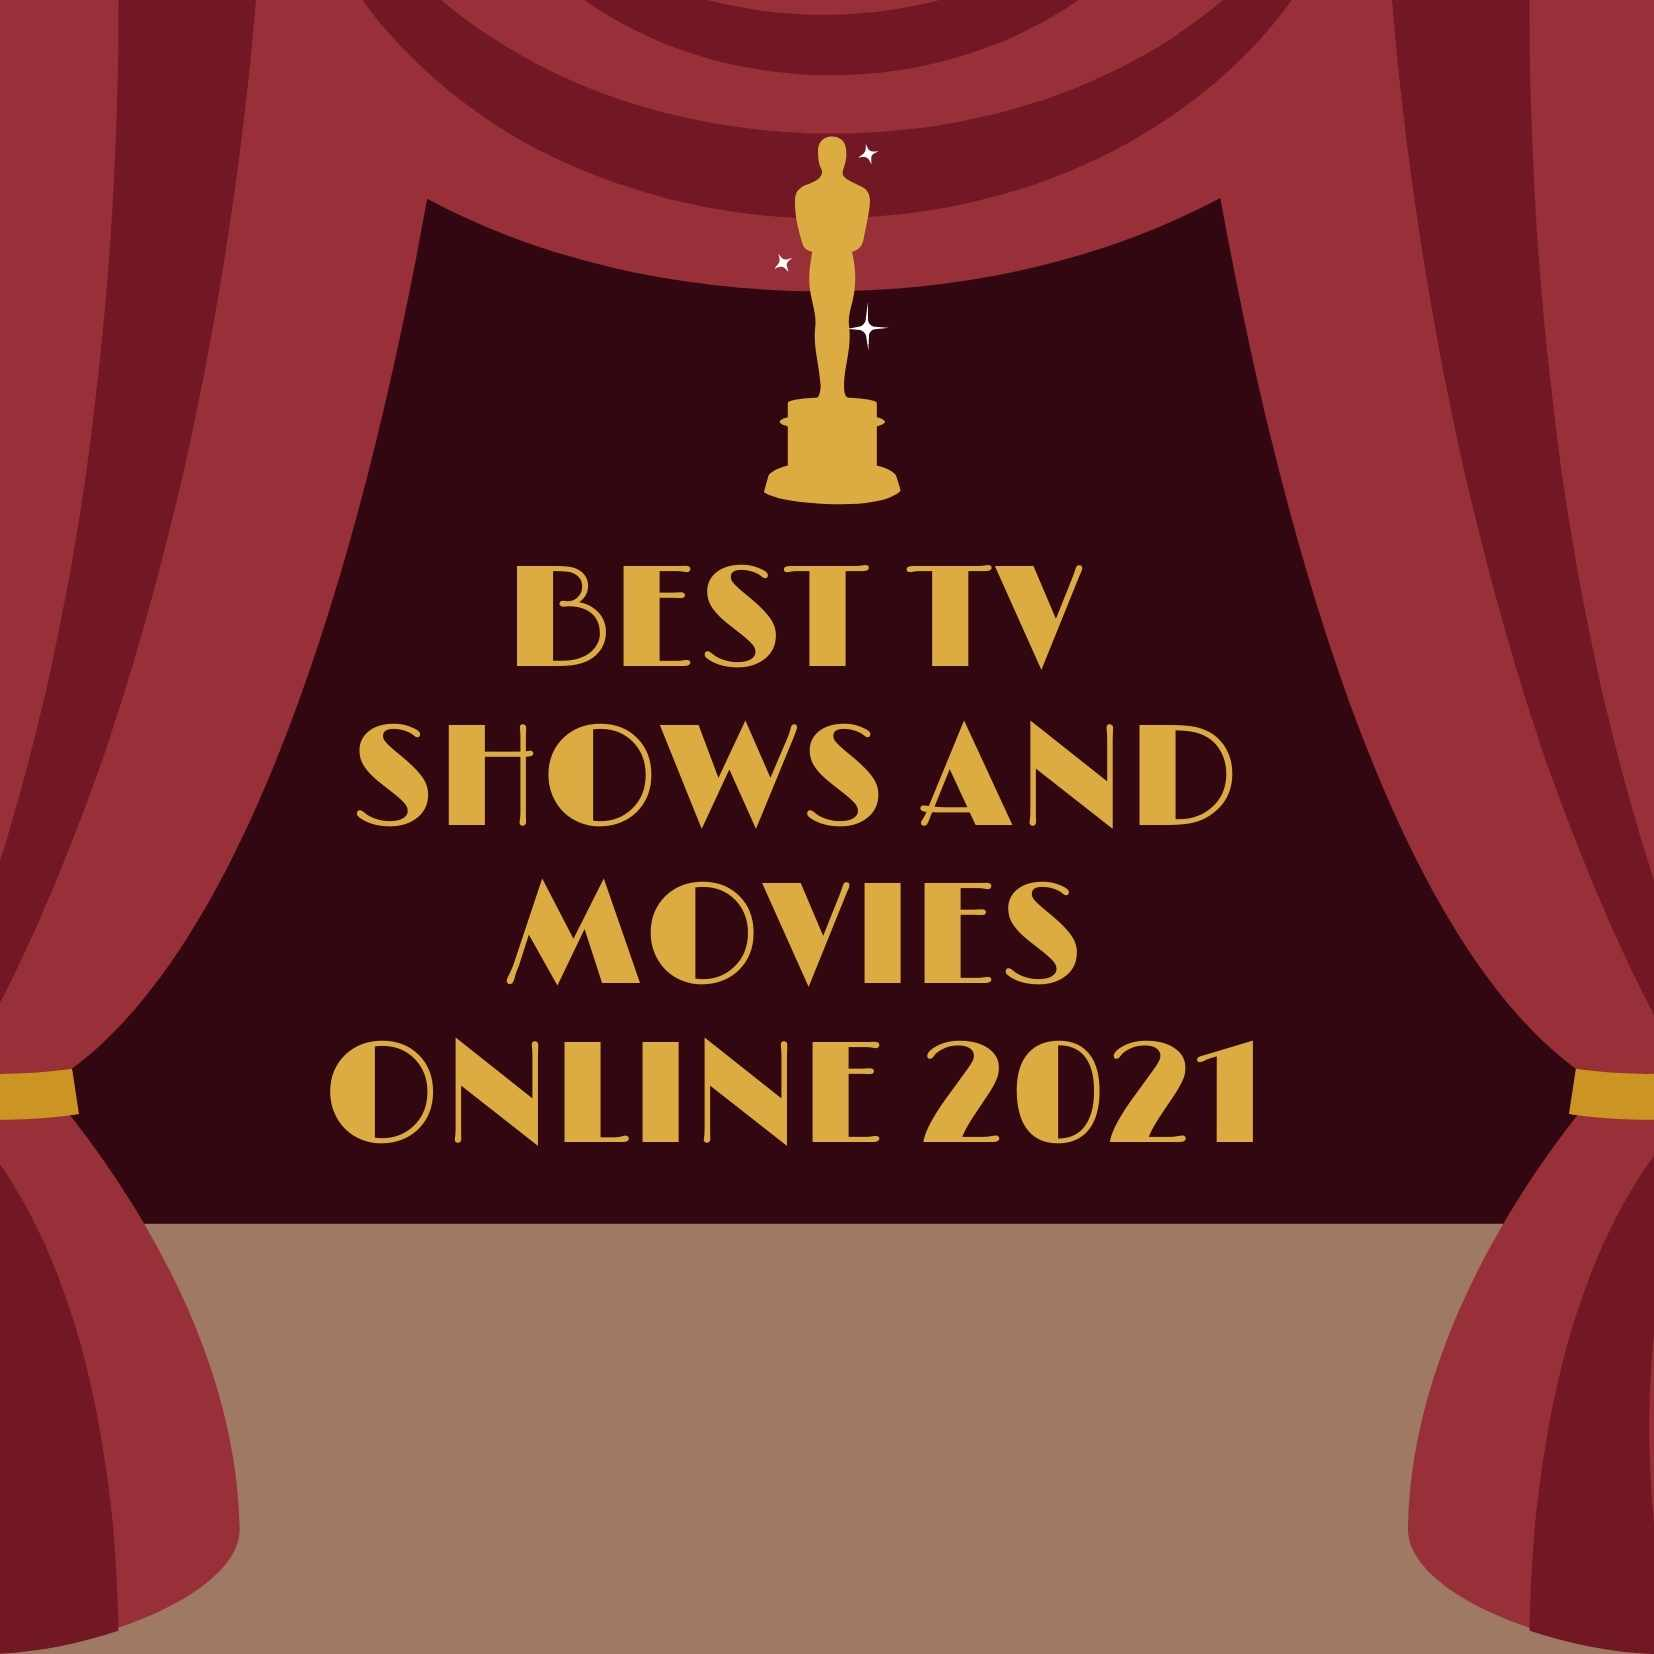 Best Tv Shows and Movies Online 2021